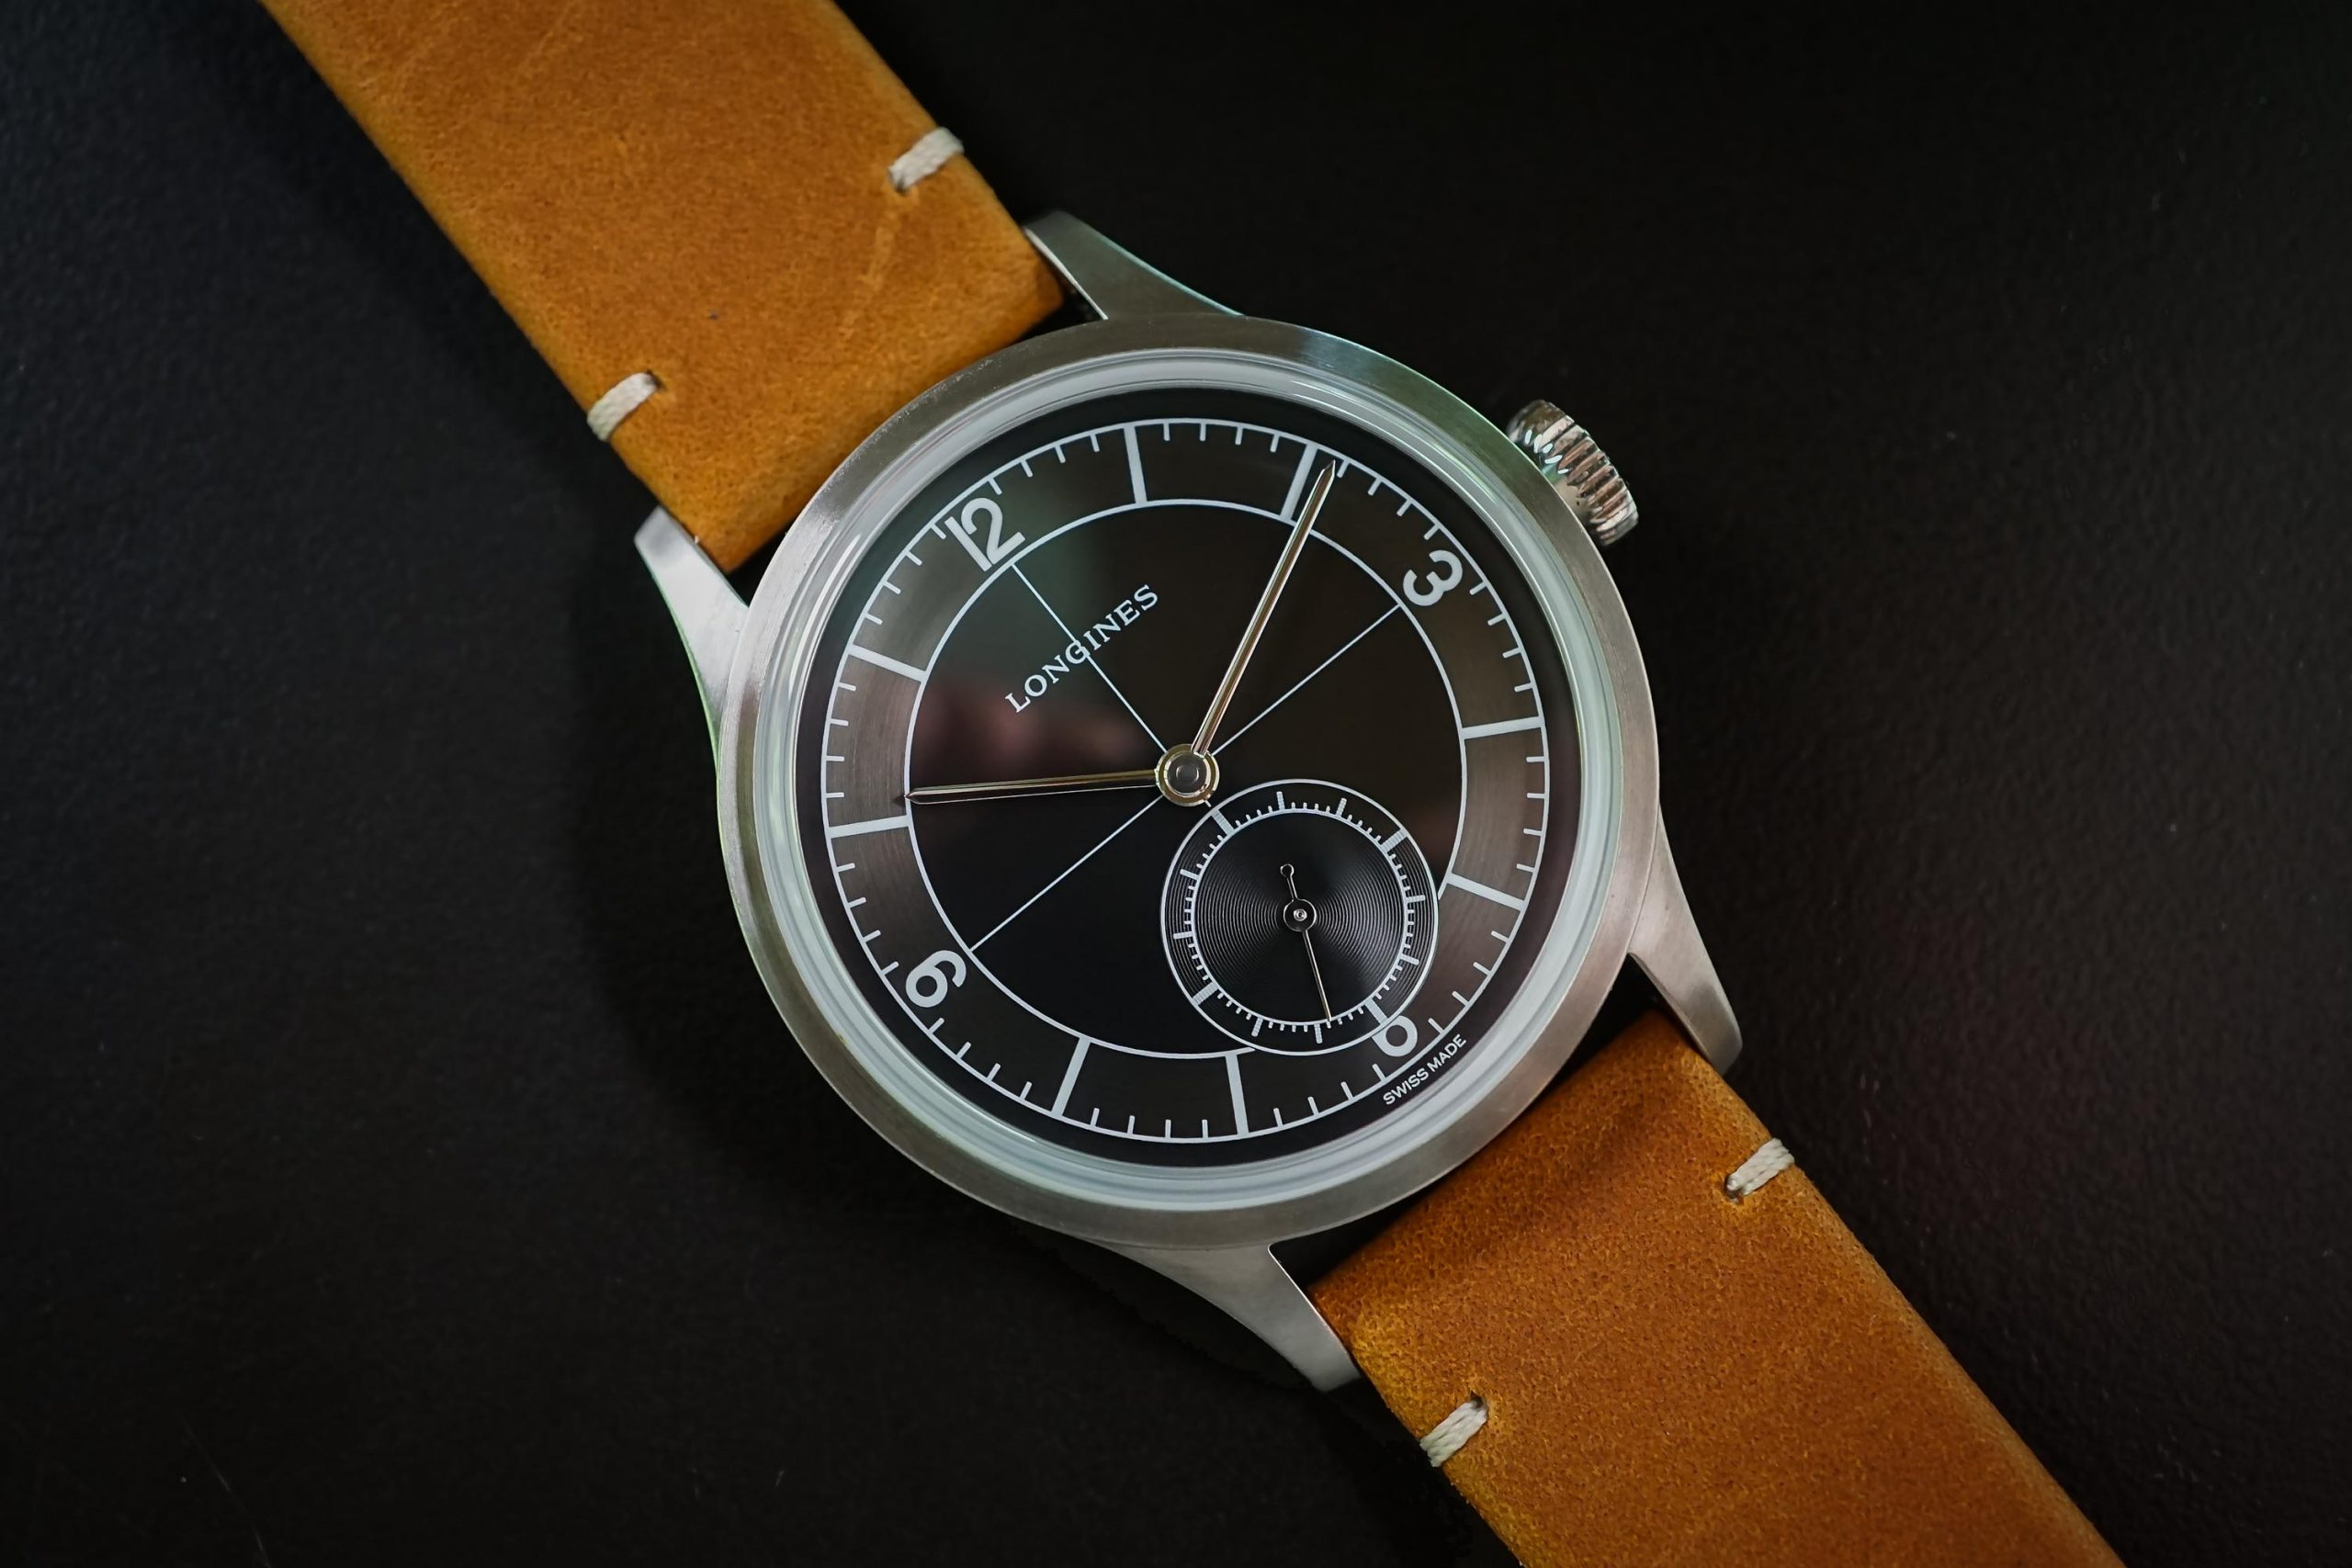 Hands-on Review – Longines Heritage Classic Sector Dial